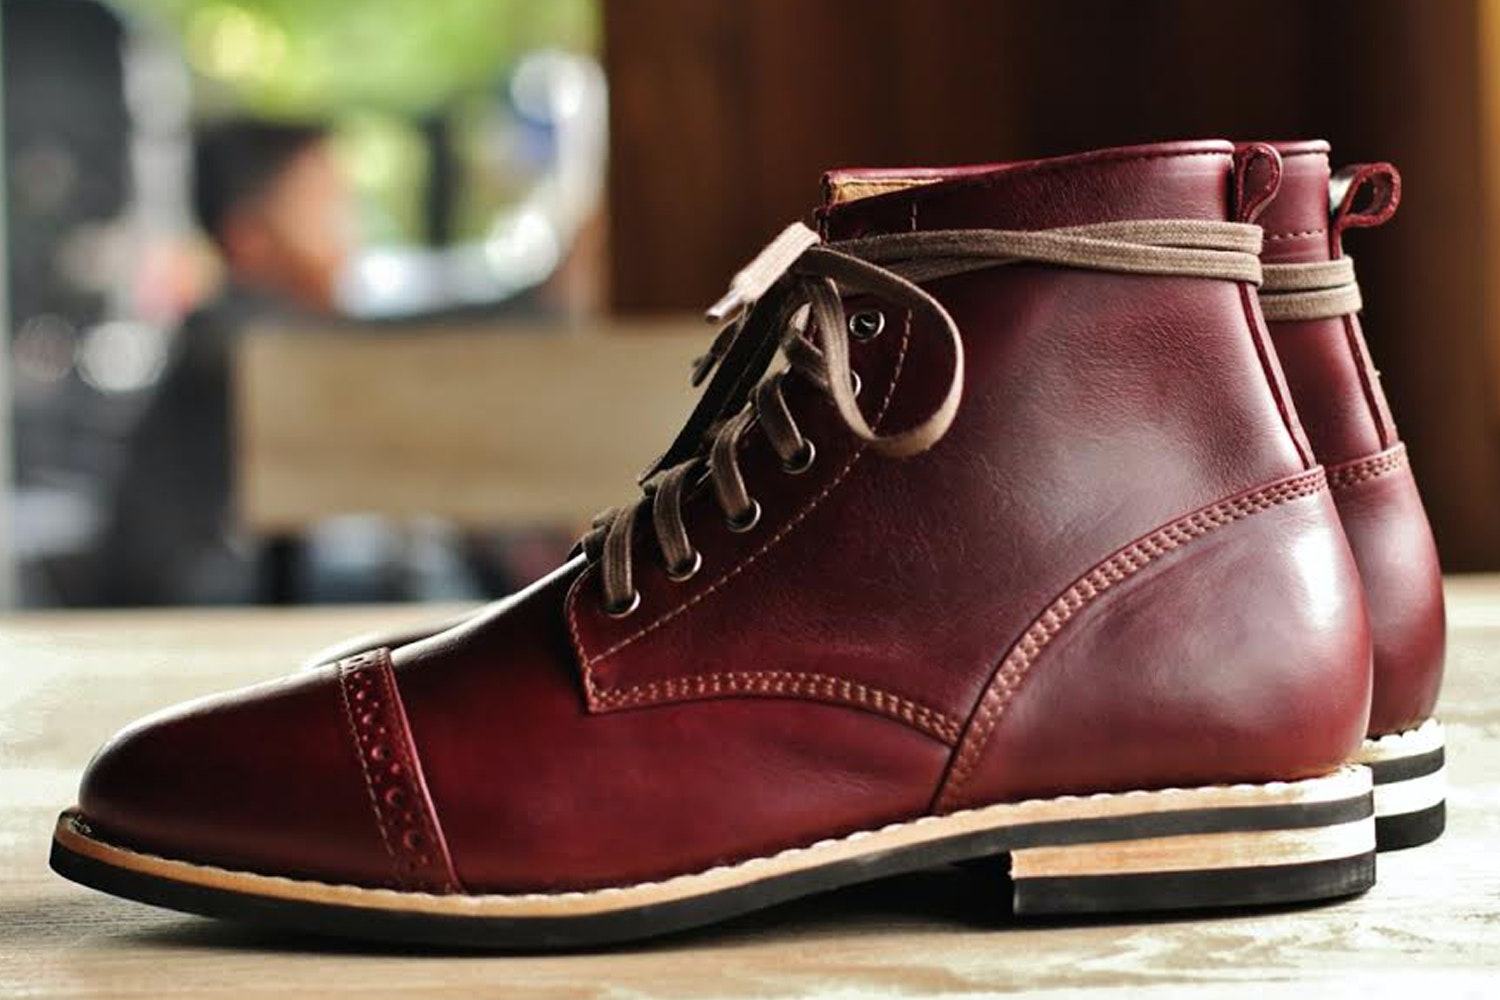 Chevalier Captoe Chromexcel #8 Boot